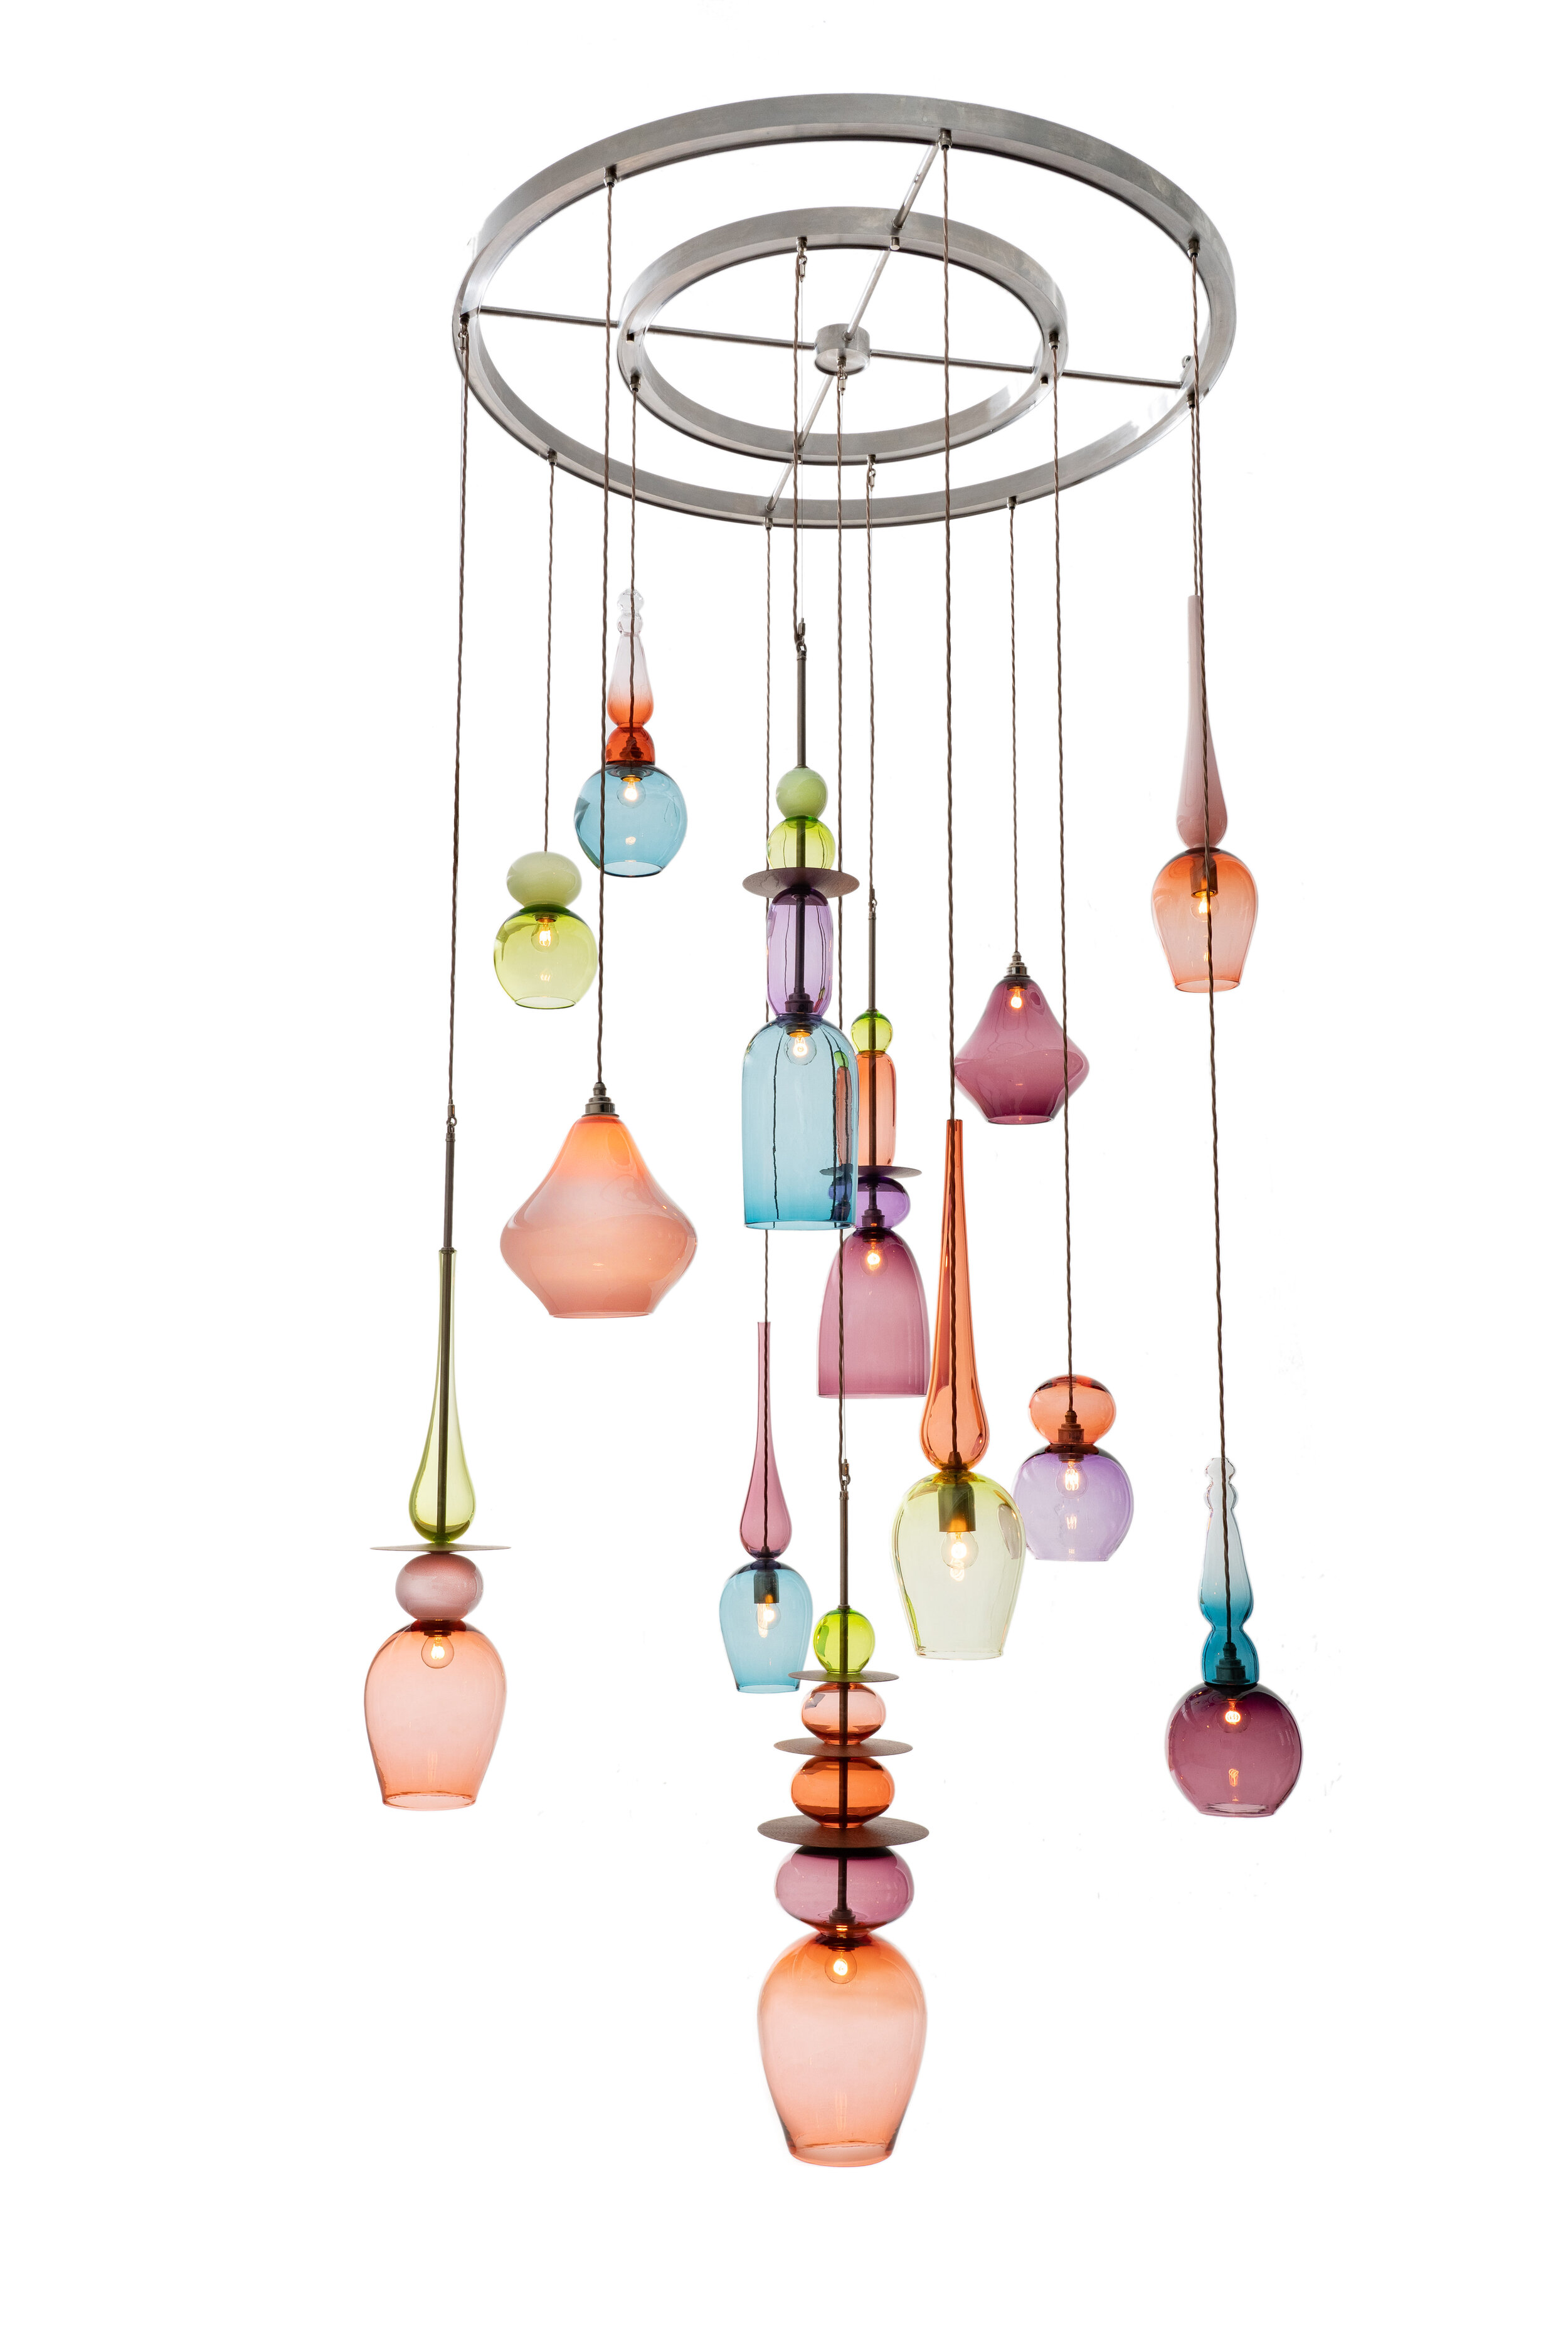 Curiousa & Curiousa will return to Decorex International 2019 (6-9 October) on stand F160, with a whole range of new products to showcase including this amazing 3 metre high chandelier.